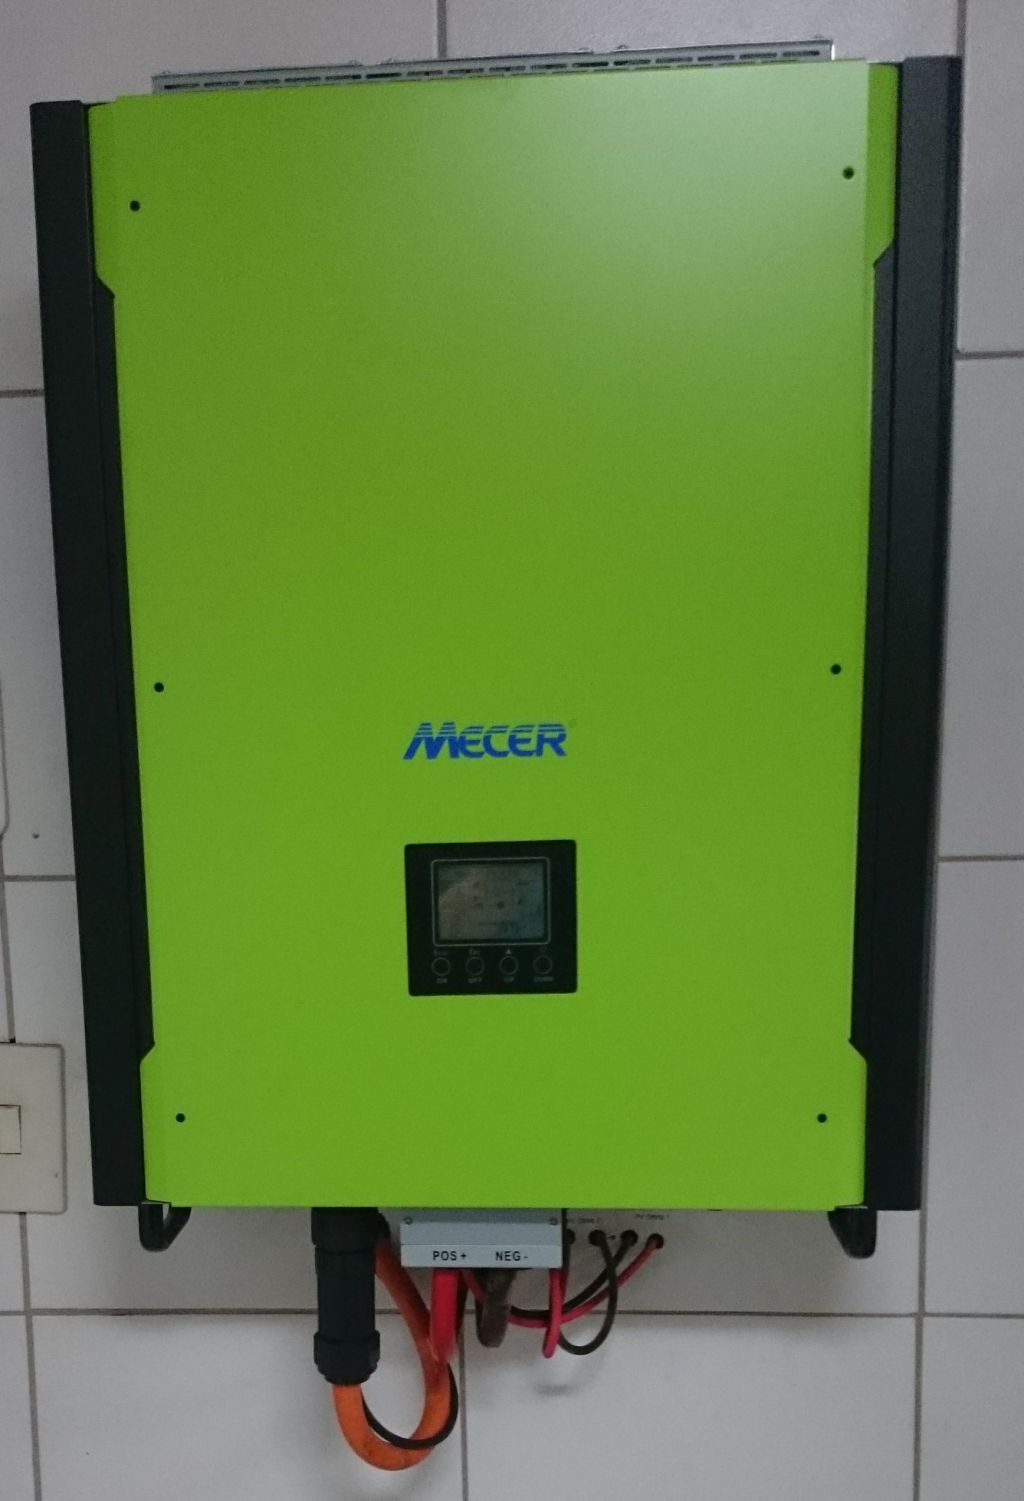 Infinisolar 10kw 3phase Inverter For Sale Classifieds